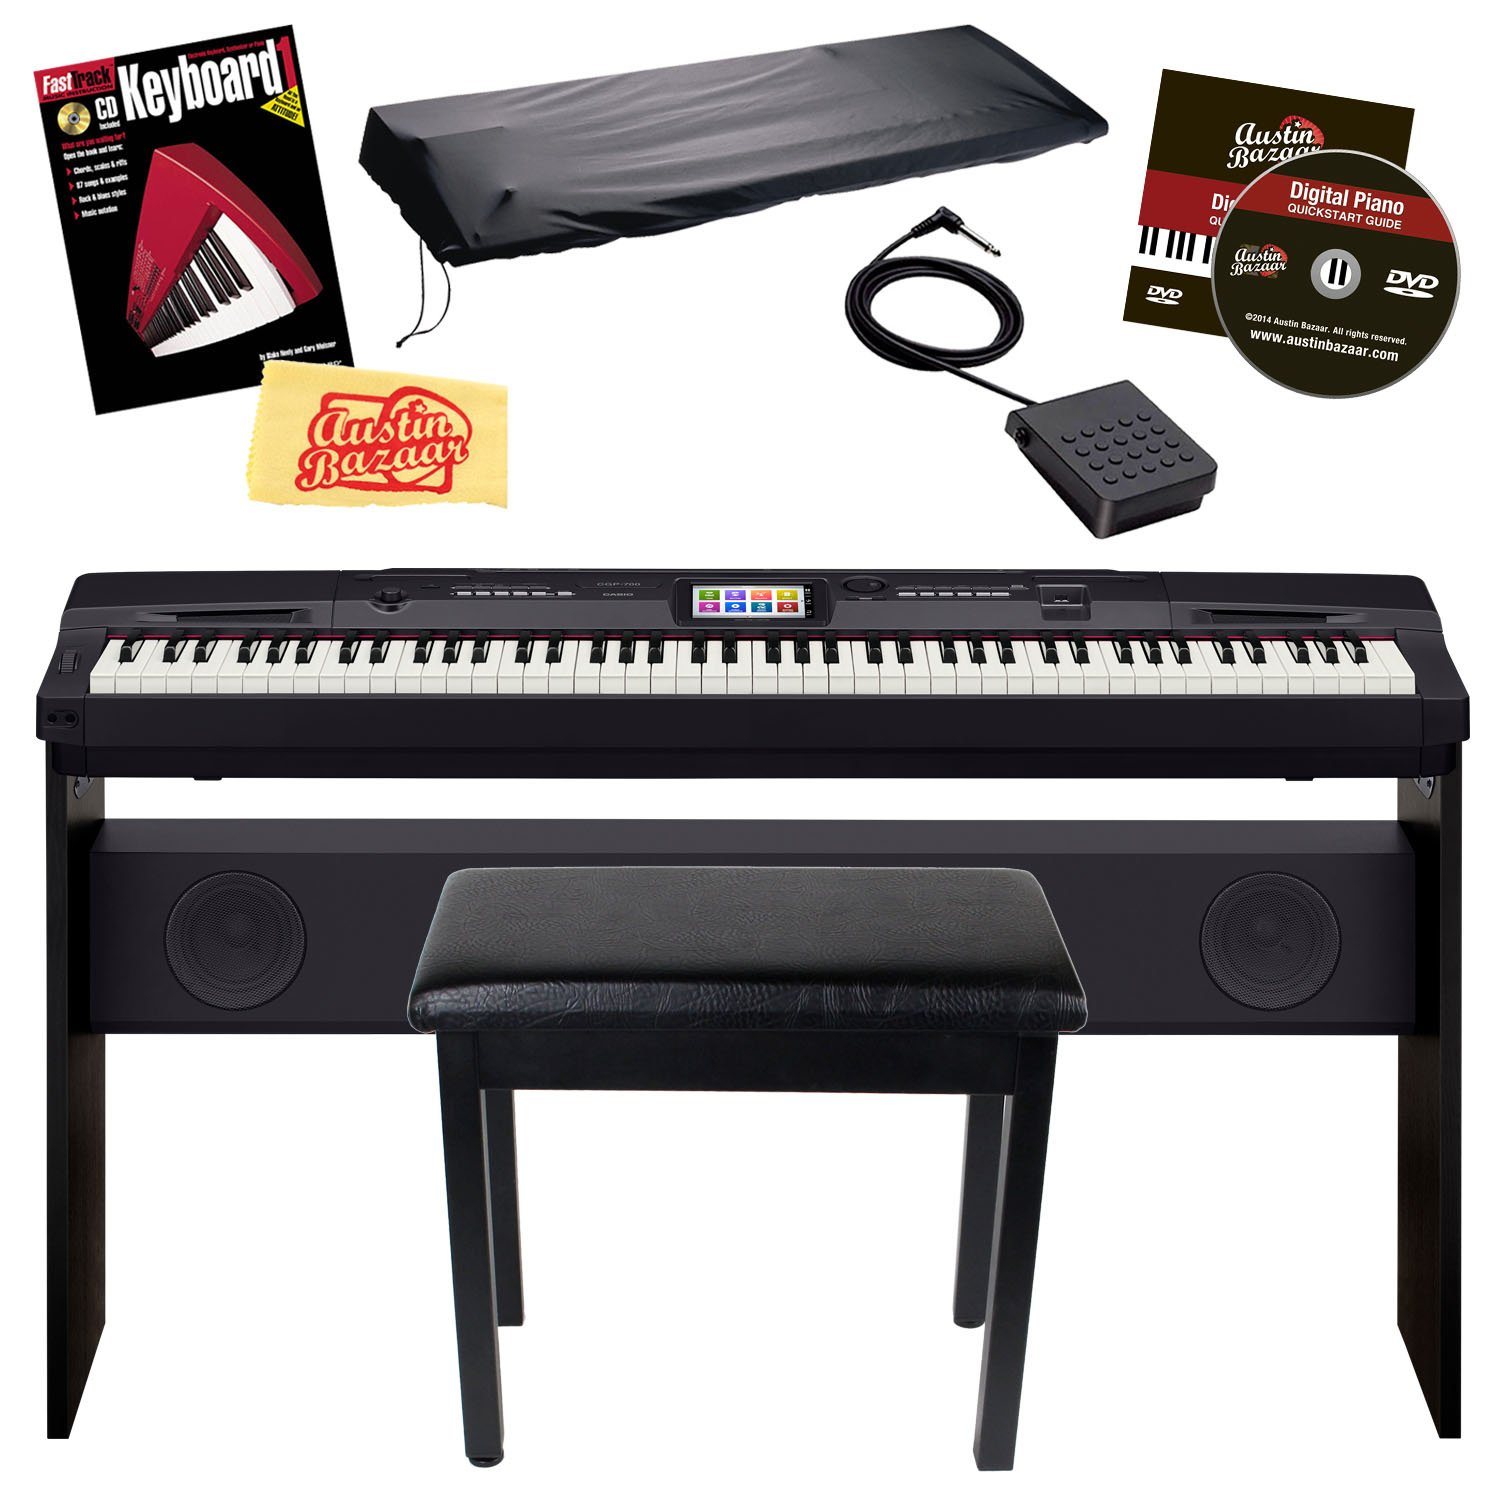 Casio CGP-700BK 88-Key Compact Grand Digital Piano Bundle with Furniture-Style Bench, Dust Cover, Instructional DVD, Instructional Book, Sustain Pedal, and Polishing Cloth - Black by Casio